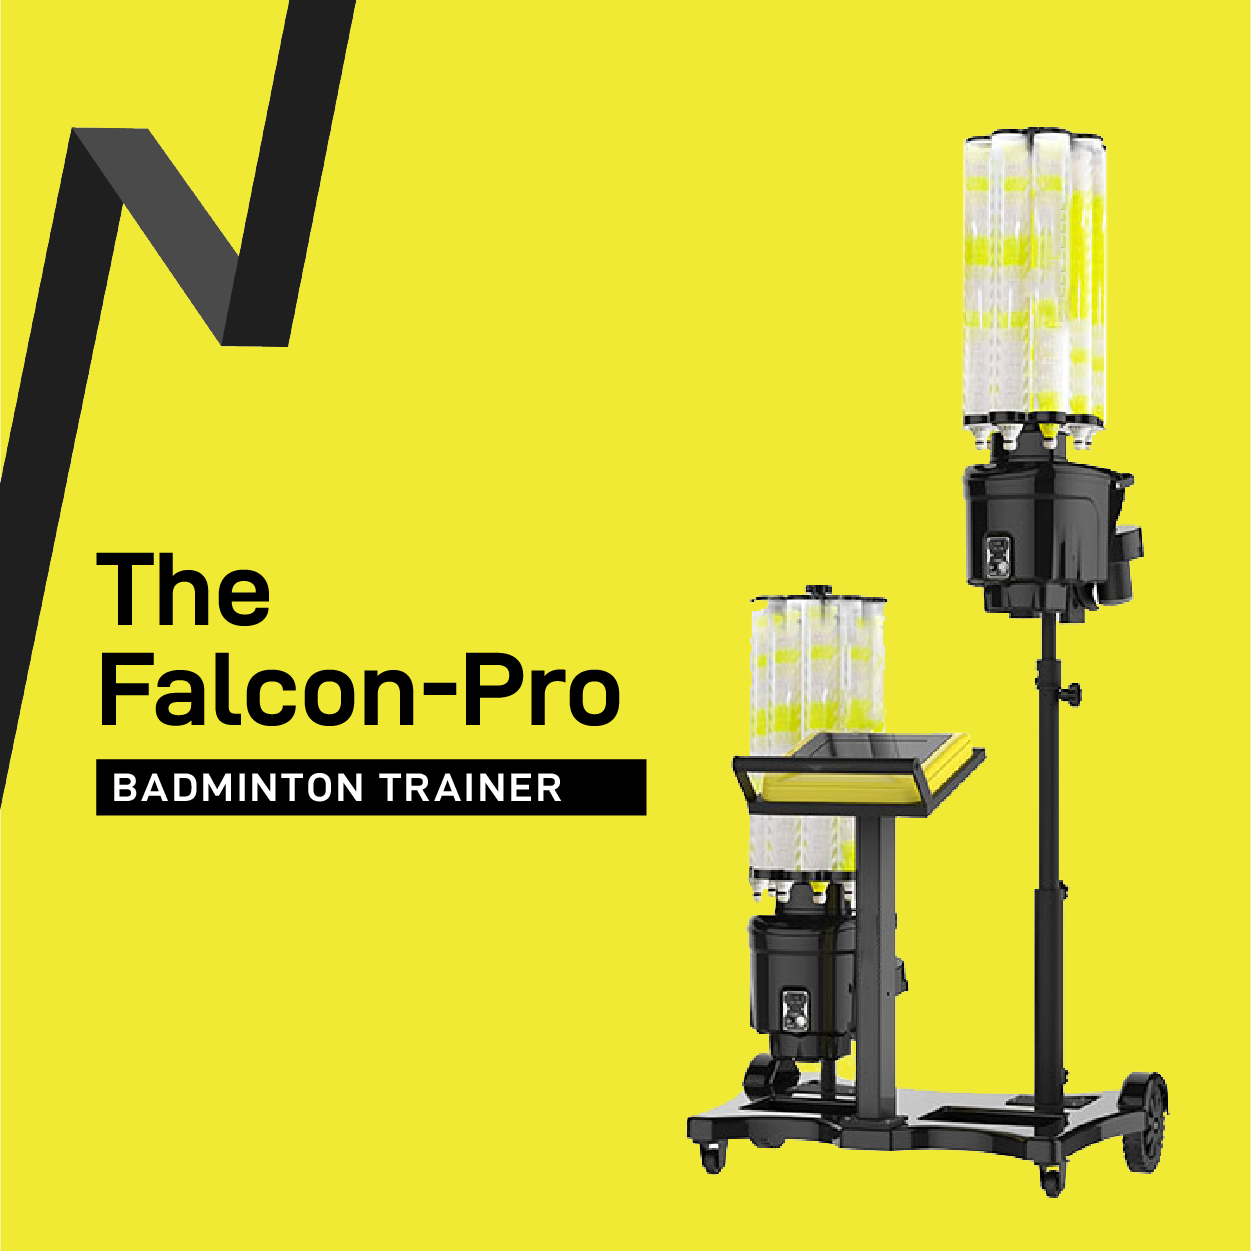 The Falcon Pro Badminton Trainer